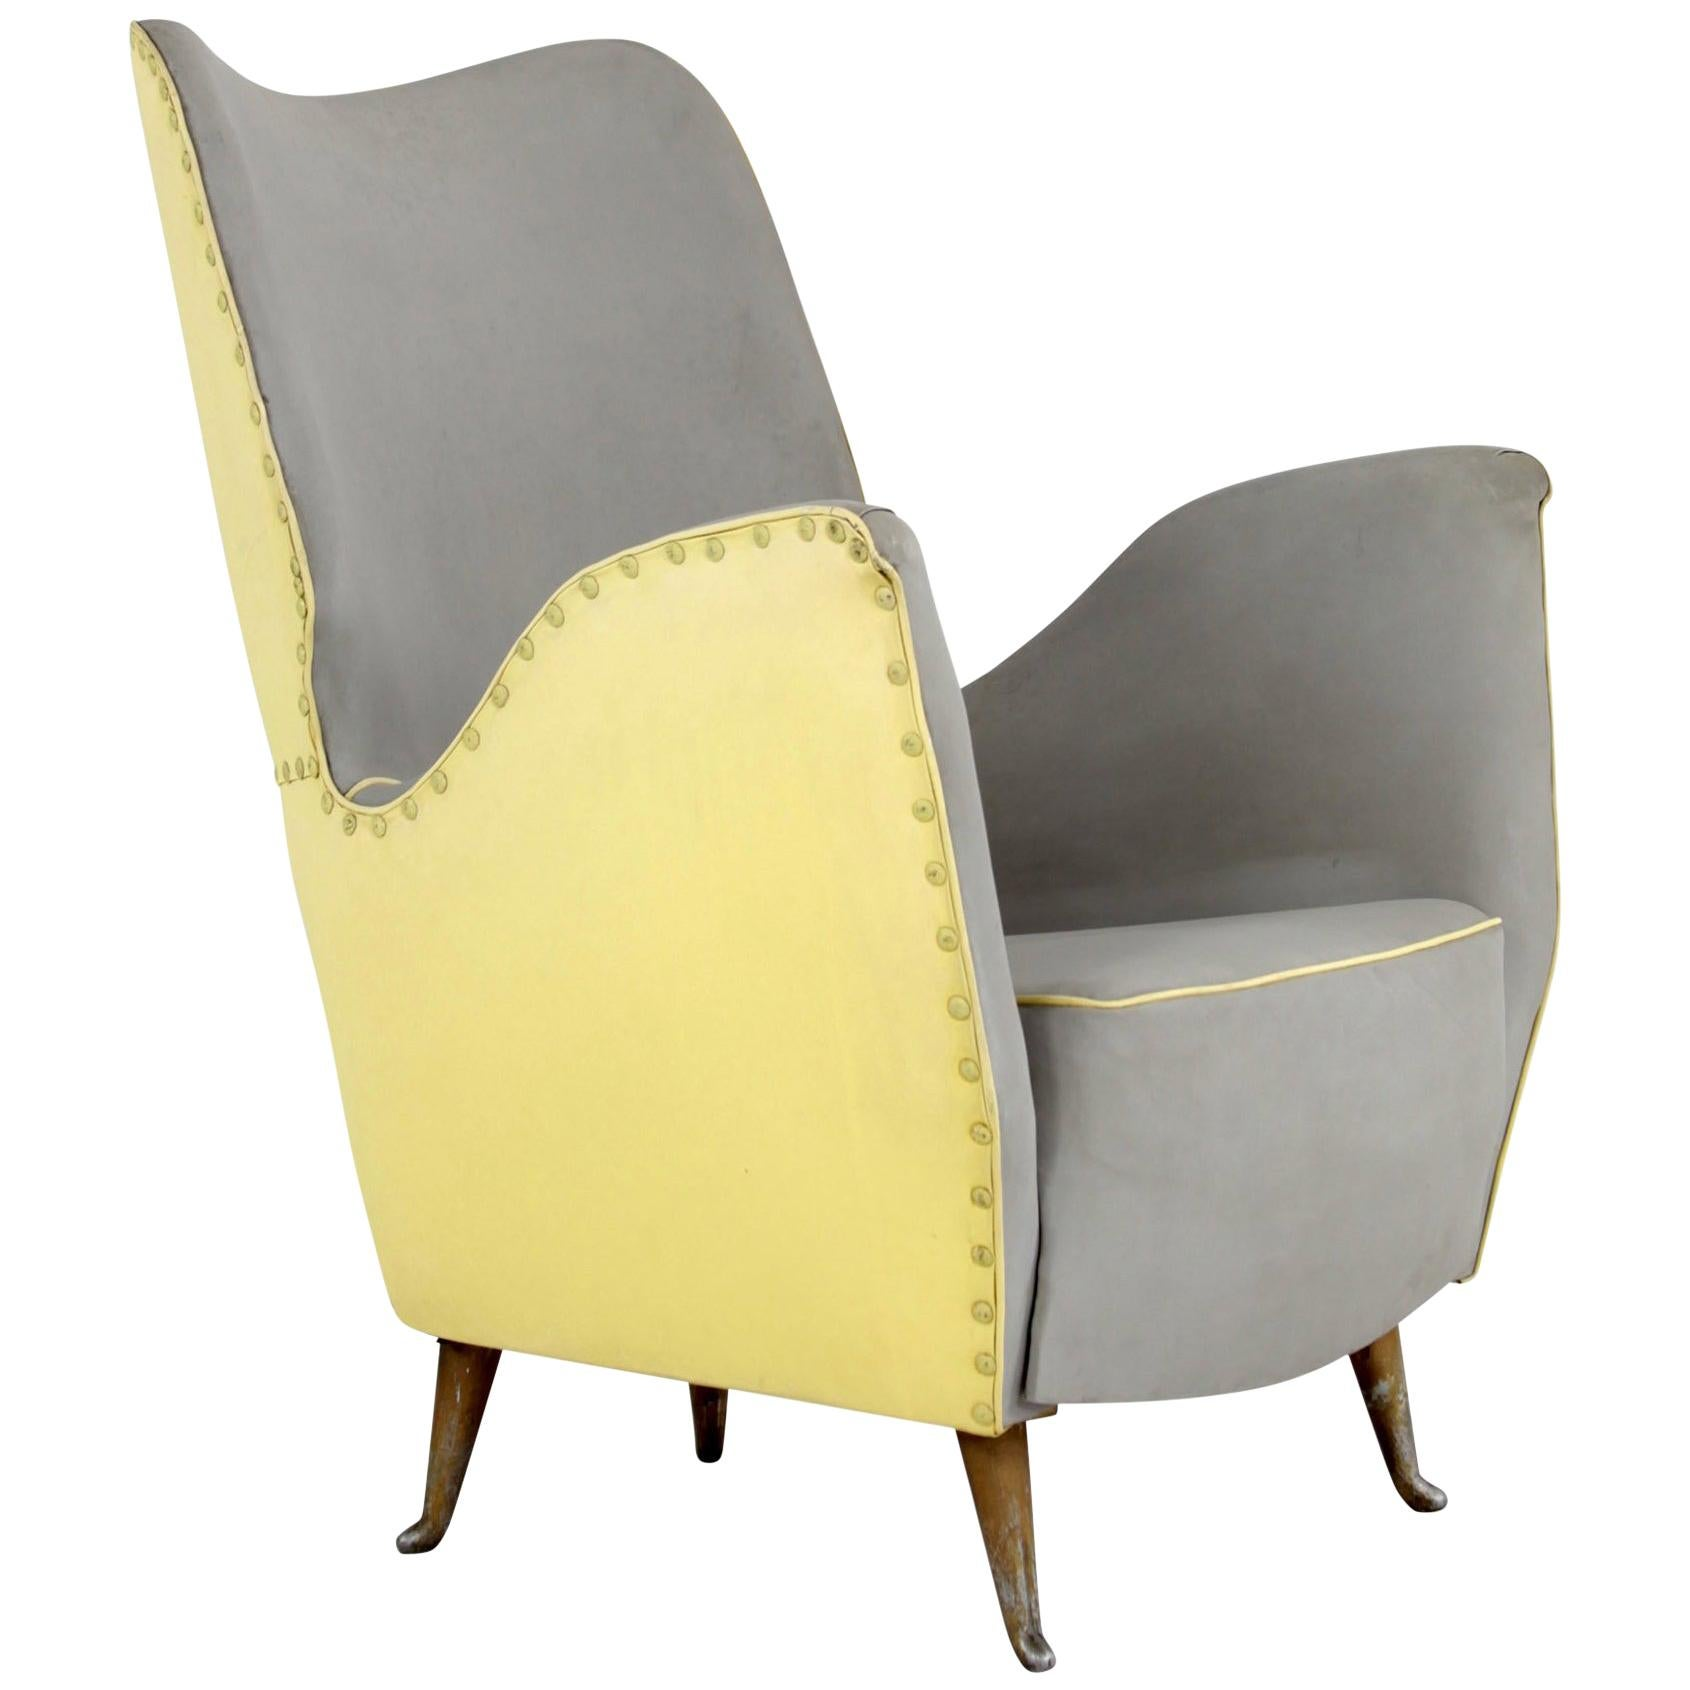 Chairs with Two-Tone Cover, Manufactured by I.S.A. Bergamo, 1950s